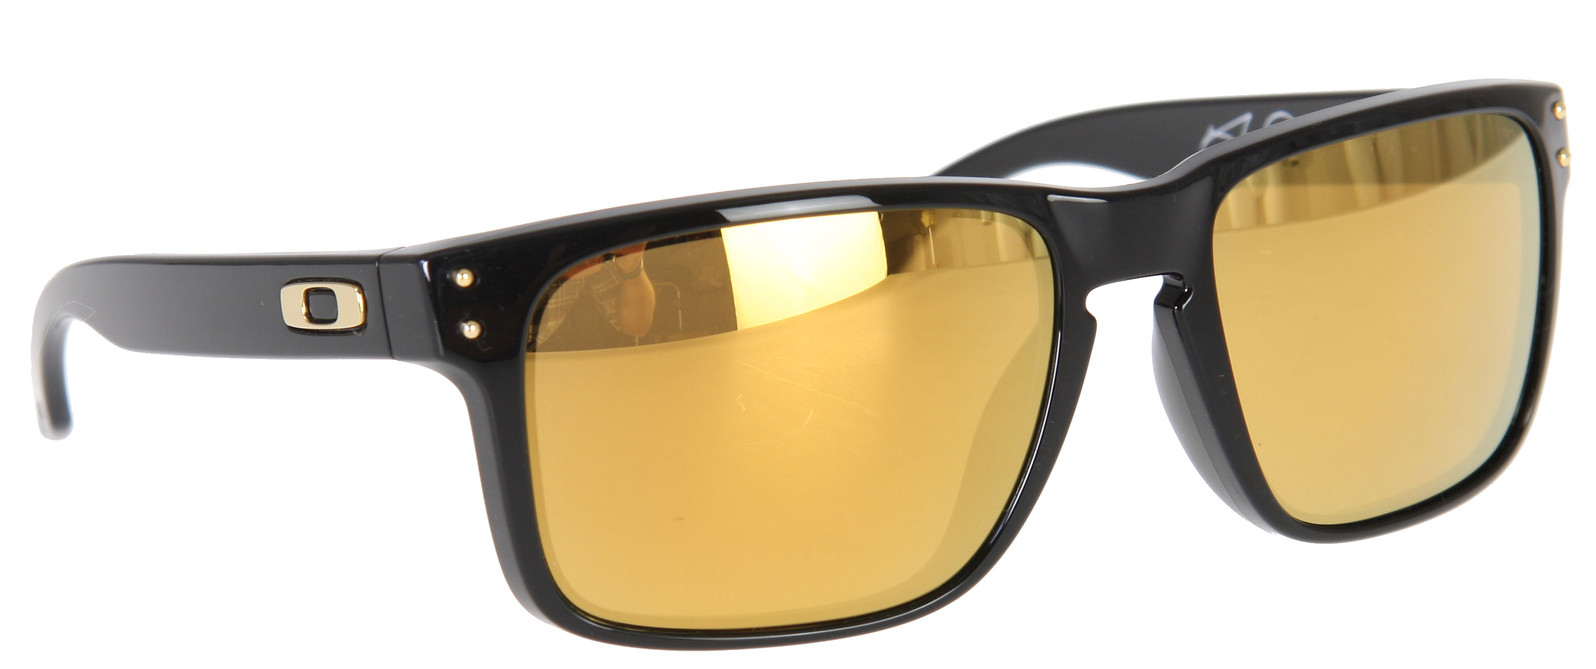 5c551b4575 Oakley Holbrook Shaun White Sunglasses Polished Black 24K Gold Iridium Lens